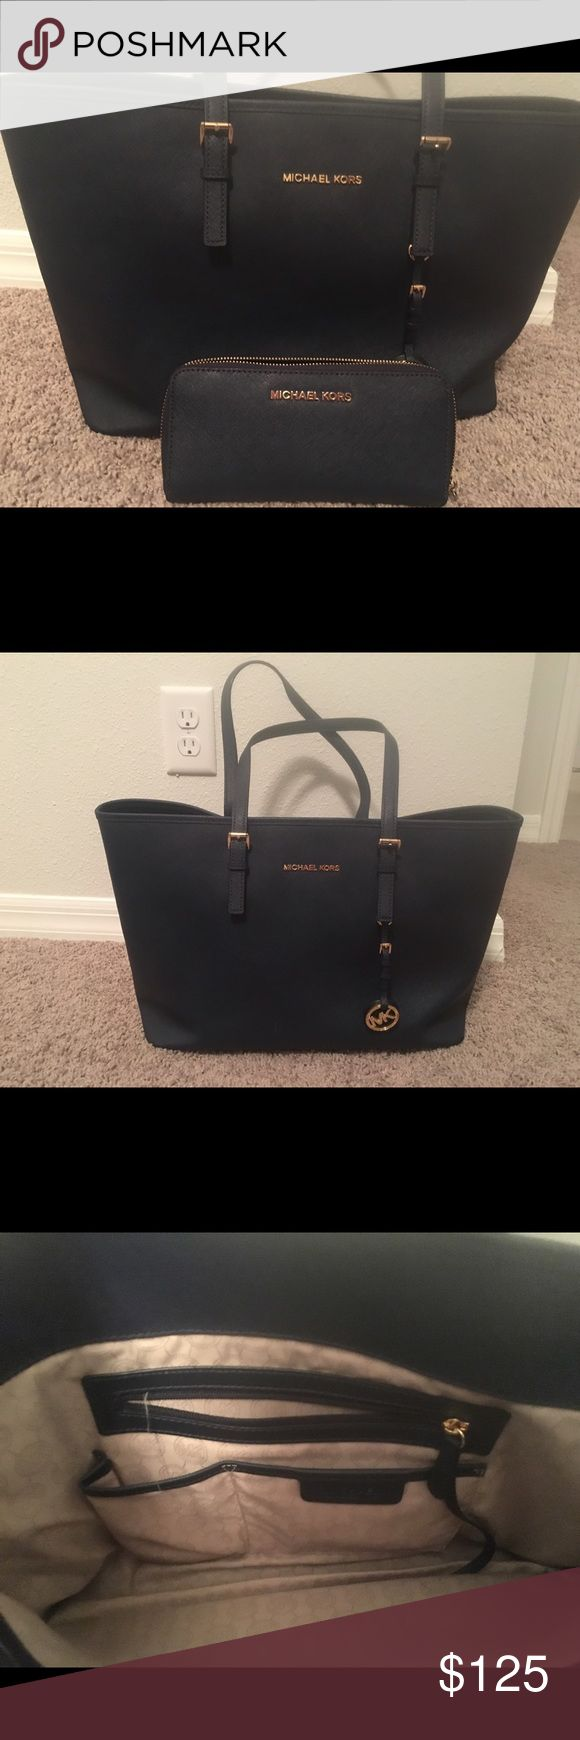 "Michael Kors Jet Set Travel Tote - Navy Leather; lining polyester 18""W 10.5""H 6""D 1 zip pocket in middle, 3 slip pockets, cell phone pocket, and key finder. 9""L double handles Michael Kors Bags Totes"